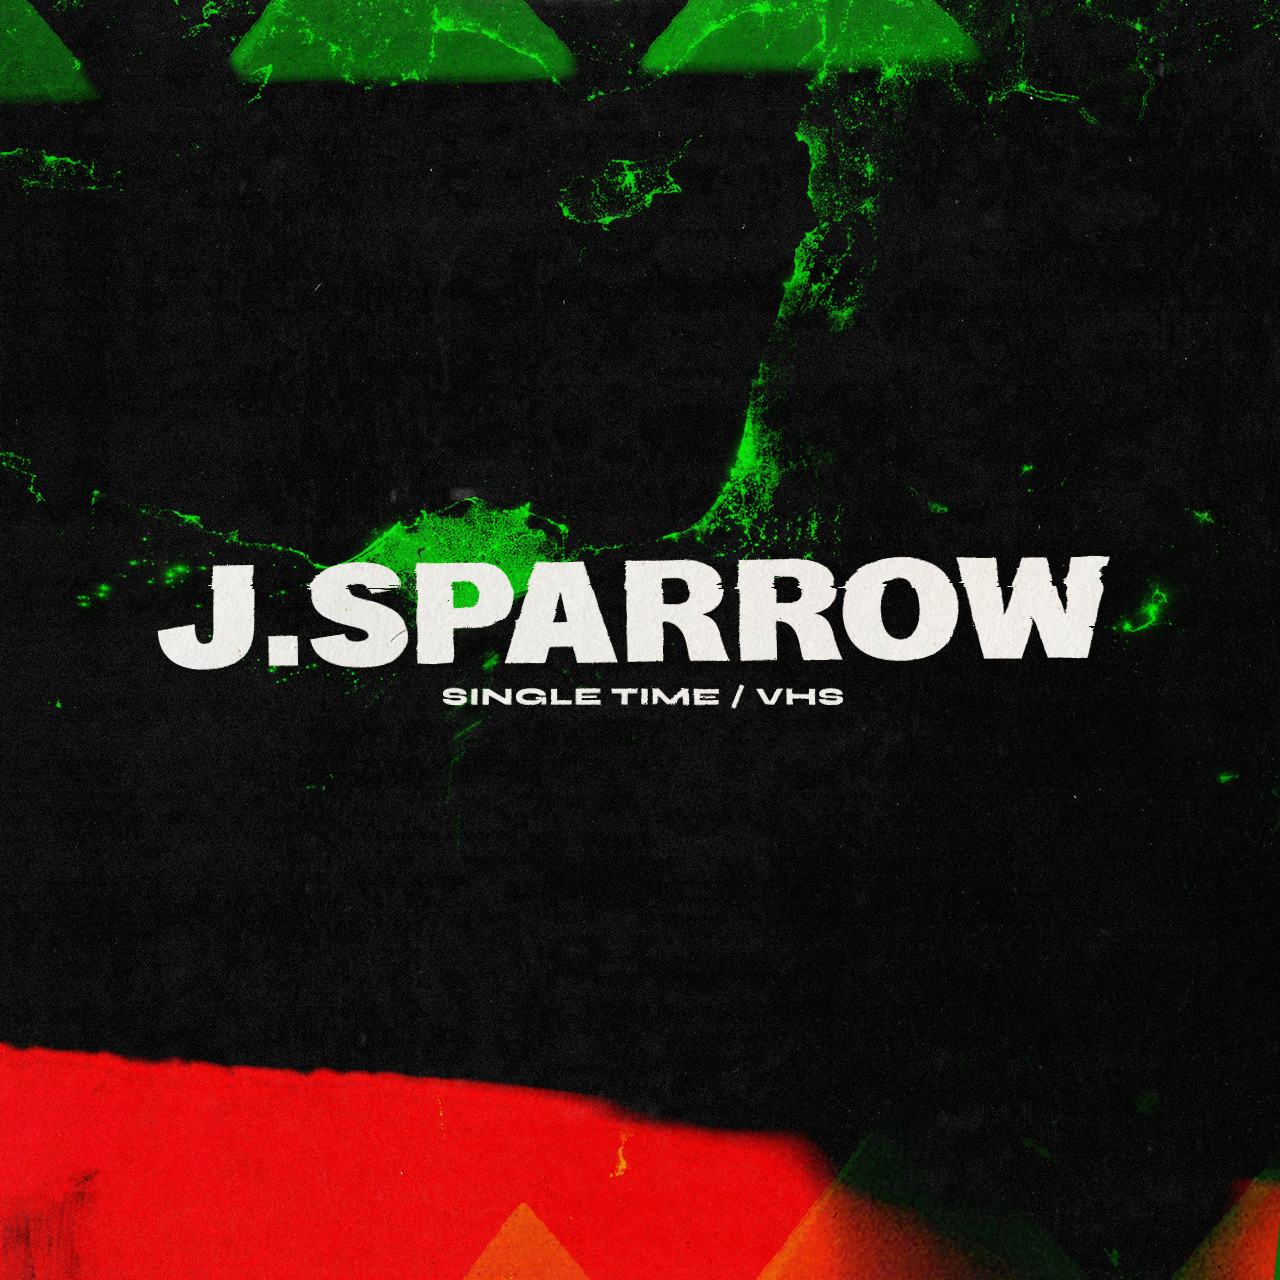 J Sparrow - Single Time